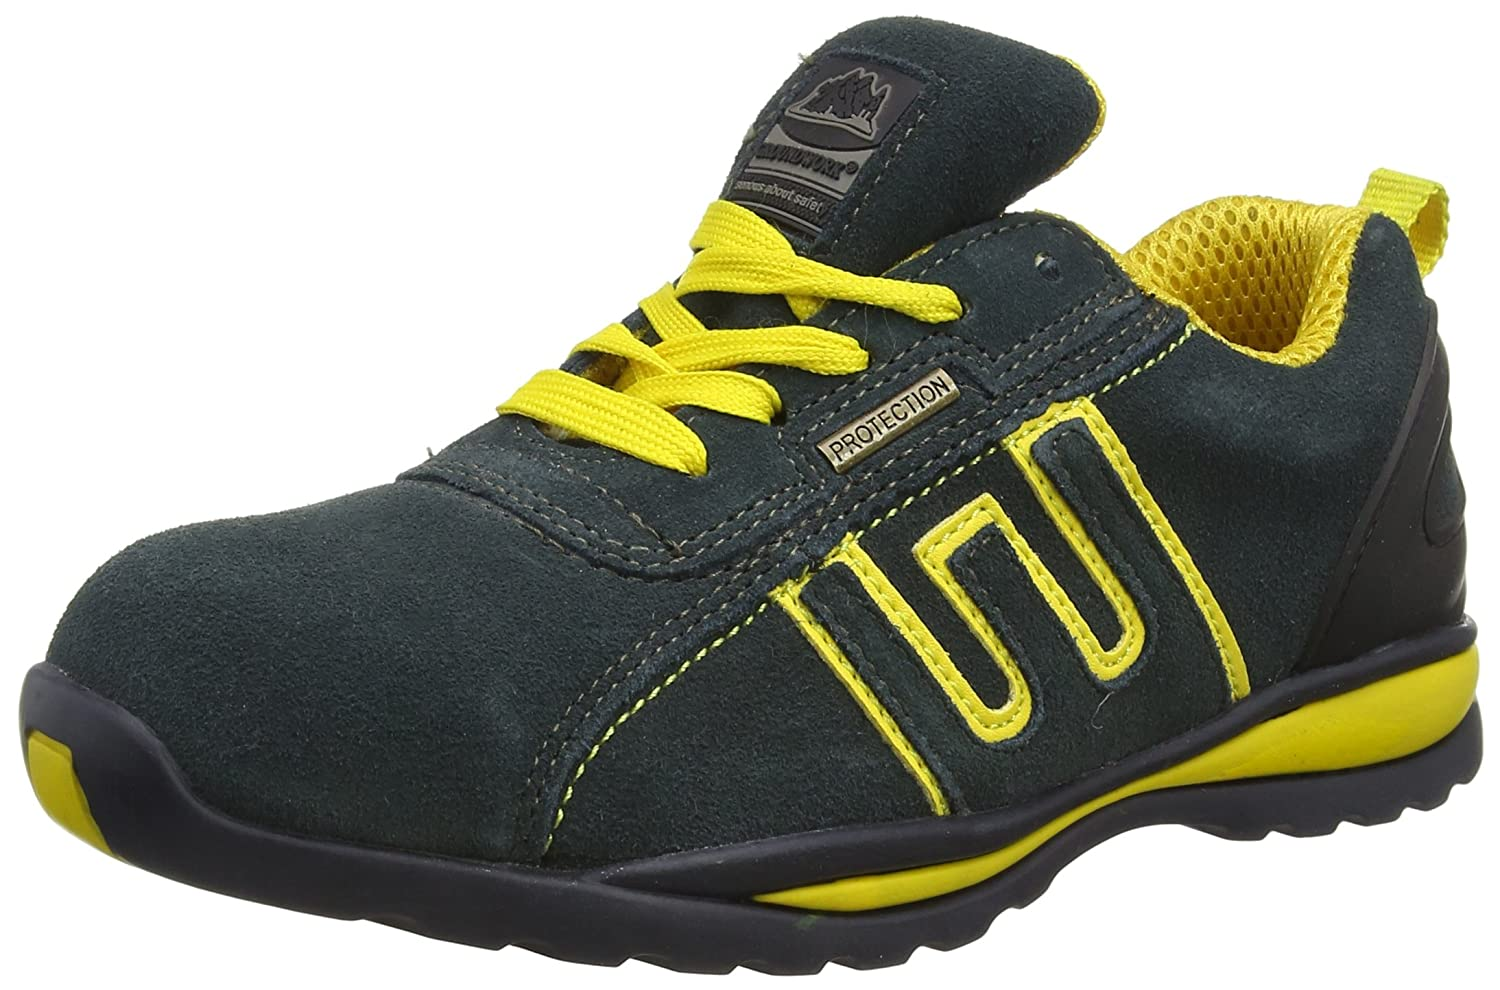 Groundwork Adulte, Gr86 S, Chaussures 19066 de Sécurité Mixte Adulte, Bleu Groundwork Bleu (Bleu Marine/Jaune) d8bd7bc - latesttechnology.space